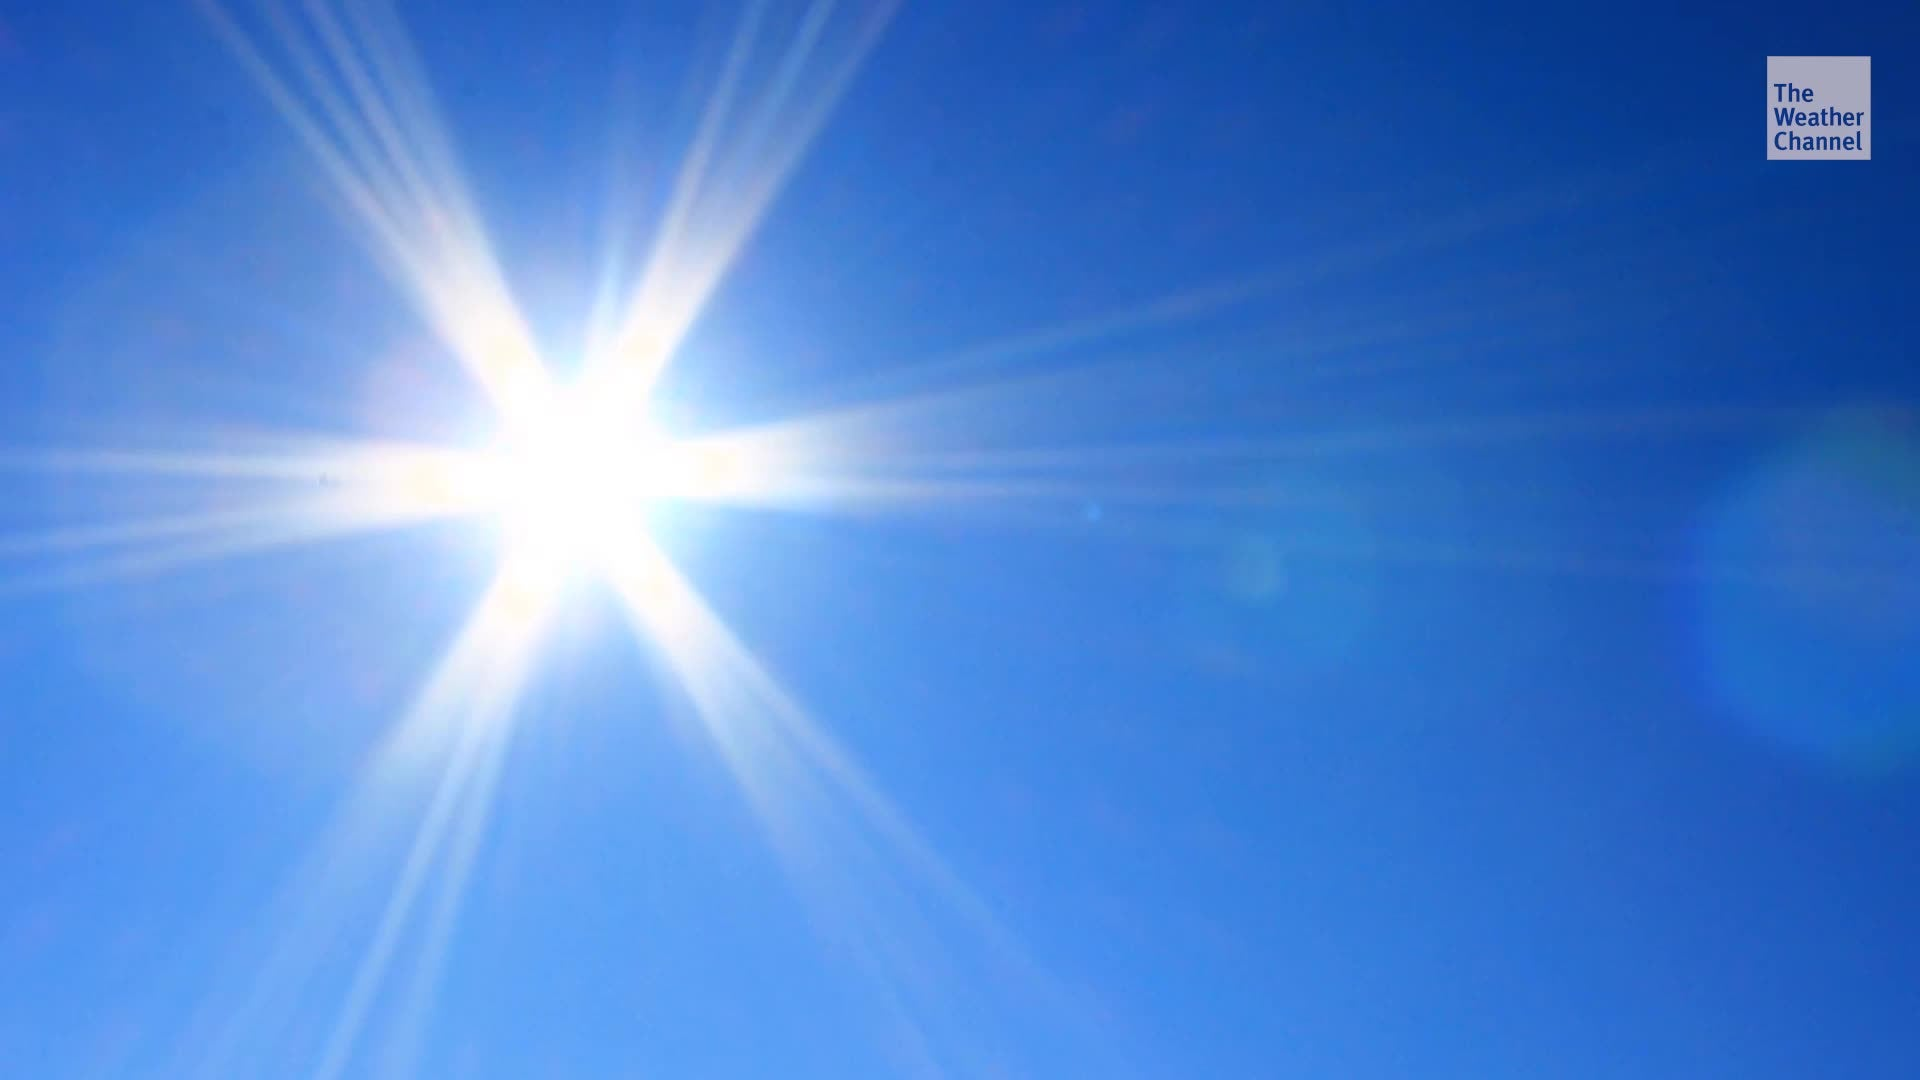 What You Need to Know About Deadly Heat